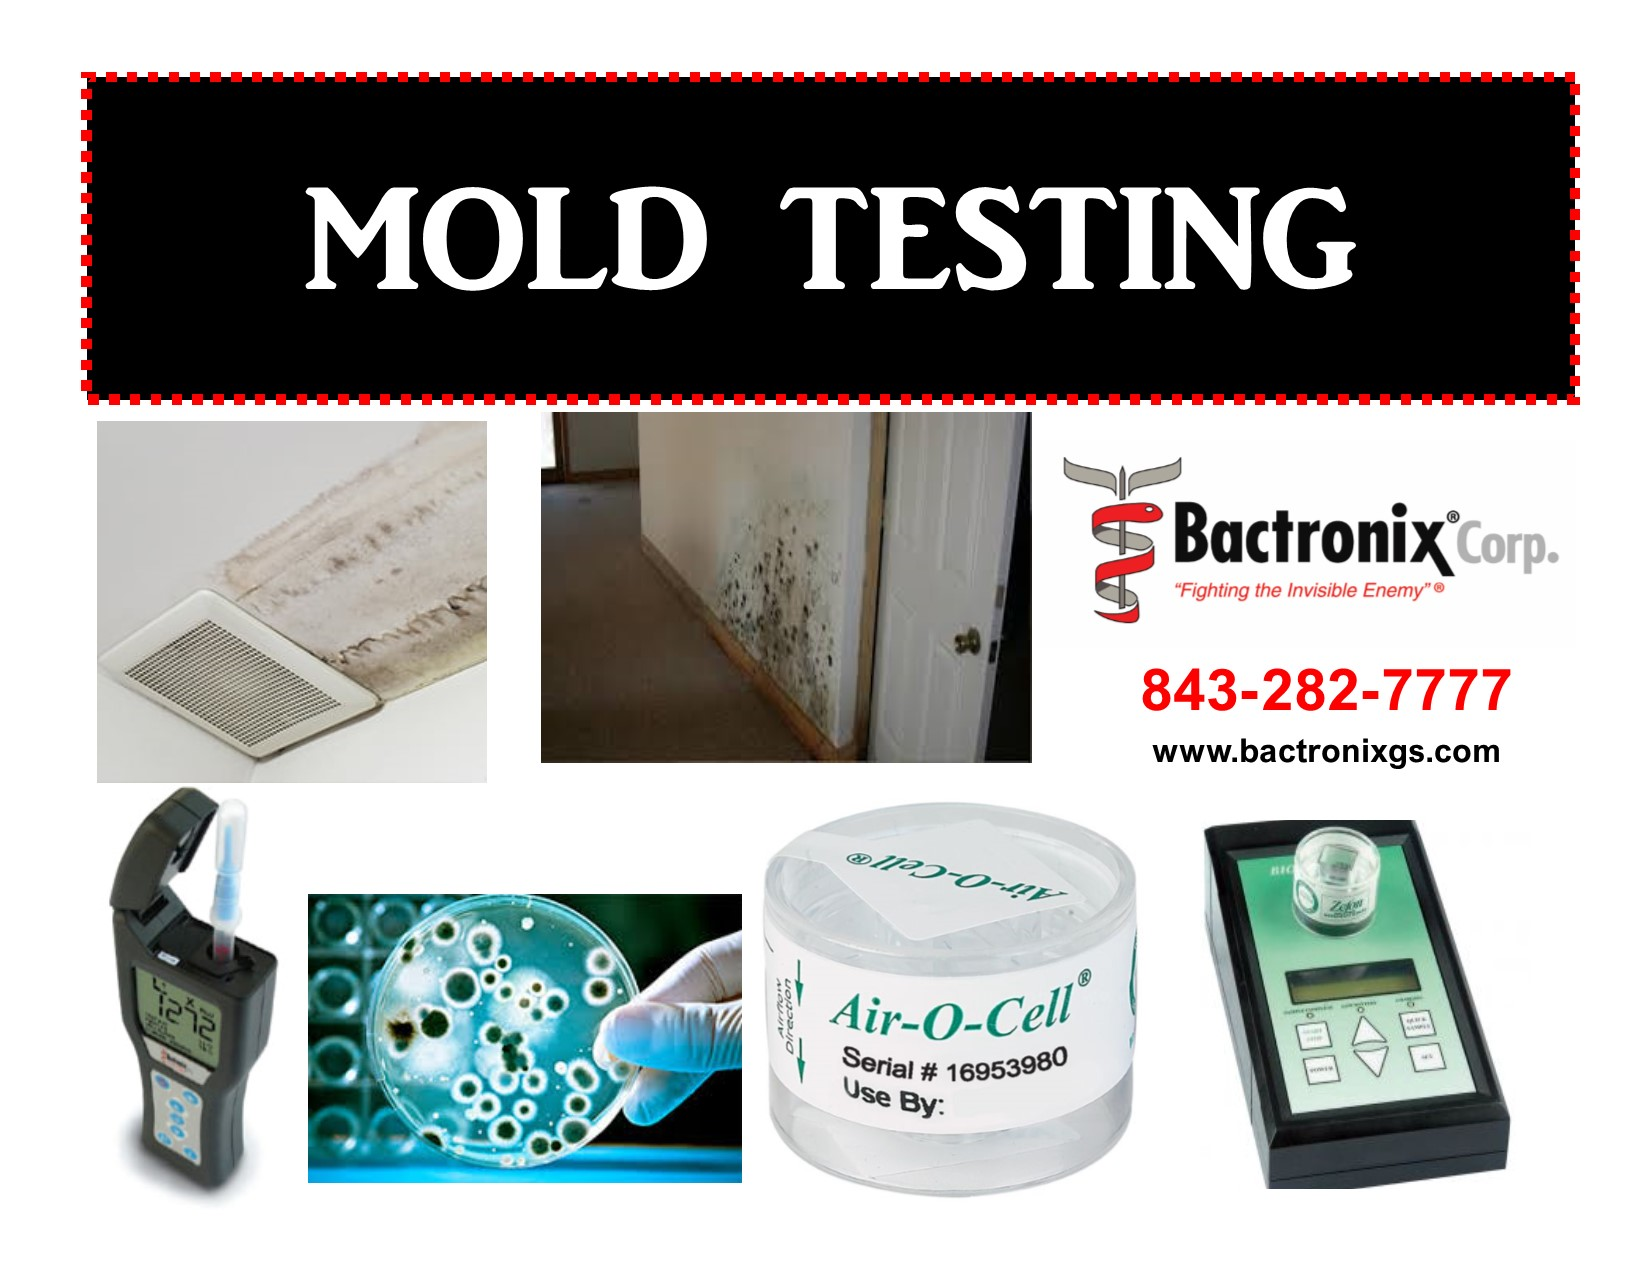 image shows mold testing equipment used by Bactronix of the Grand Strand in Myrtle Beach, SC. Mold testing for homes, schools, offices, clinics, and commercial buildings.